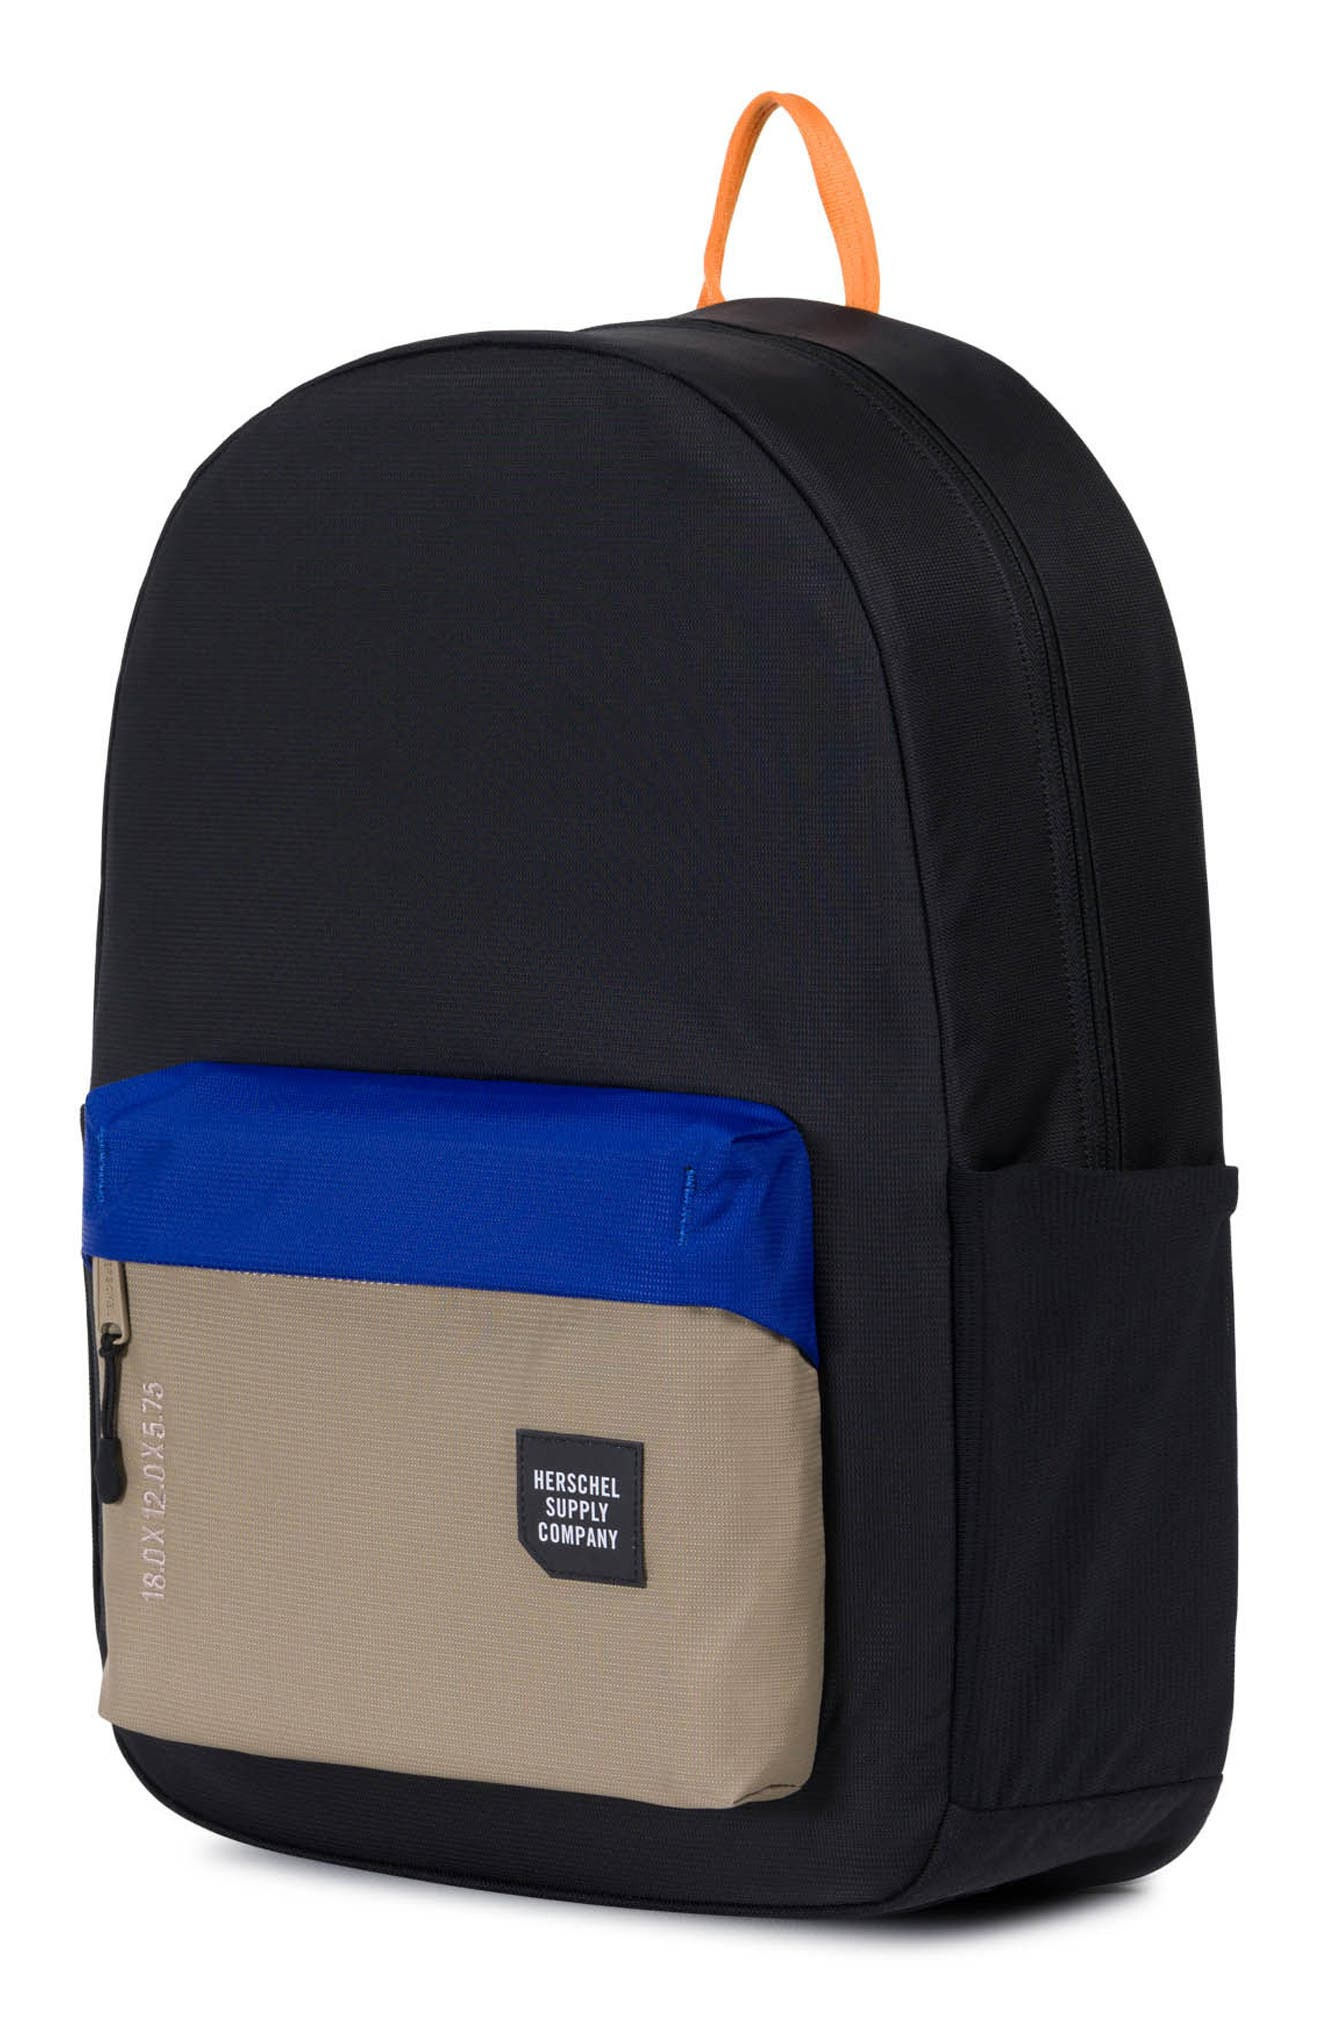 HERSCHEL SUPPLY CO.,                             Herschel Rundle Trail Collection Backpack,                             Alternate thumbnail 4, color,                             253